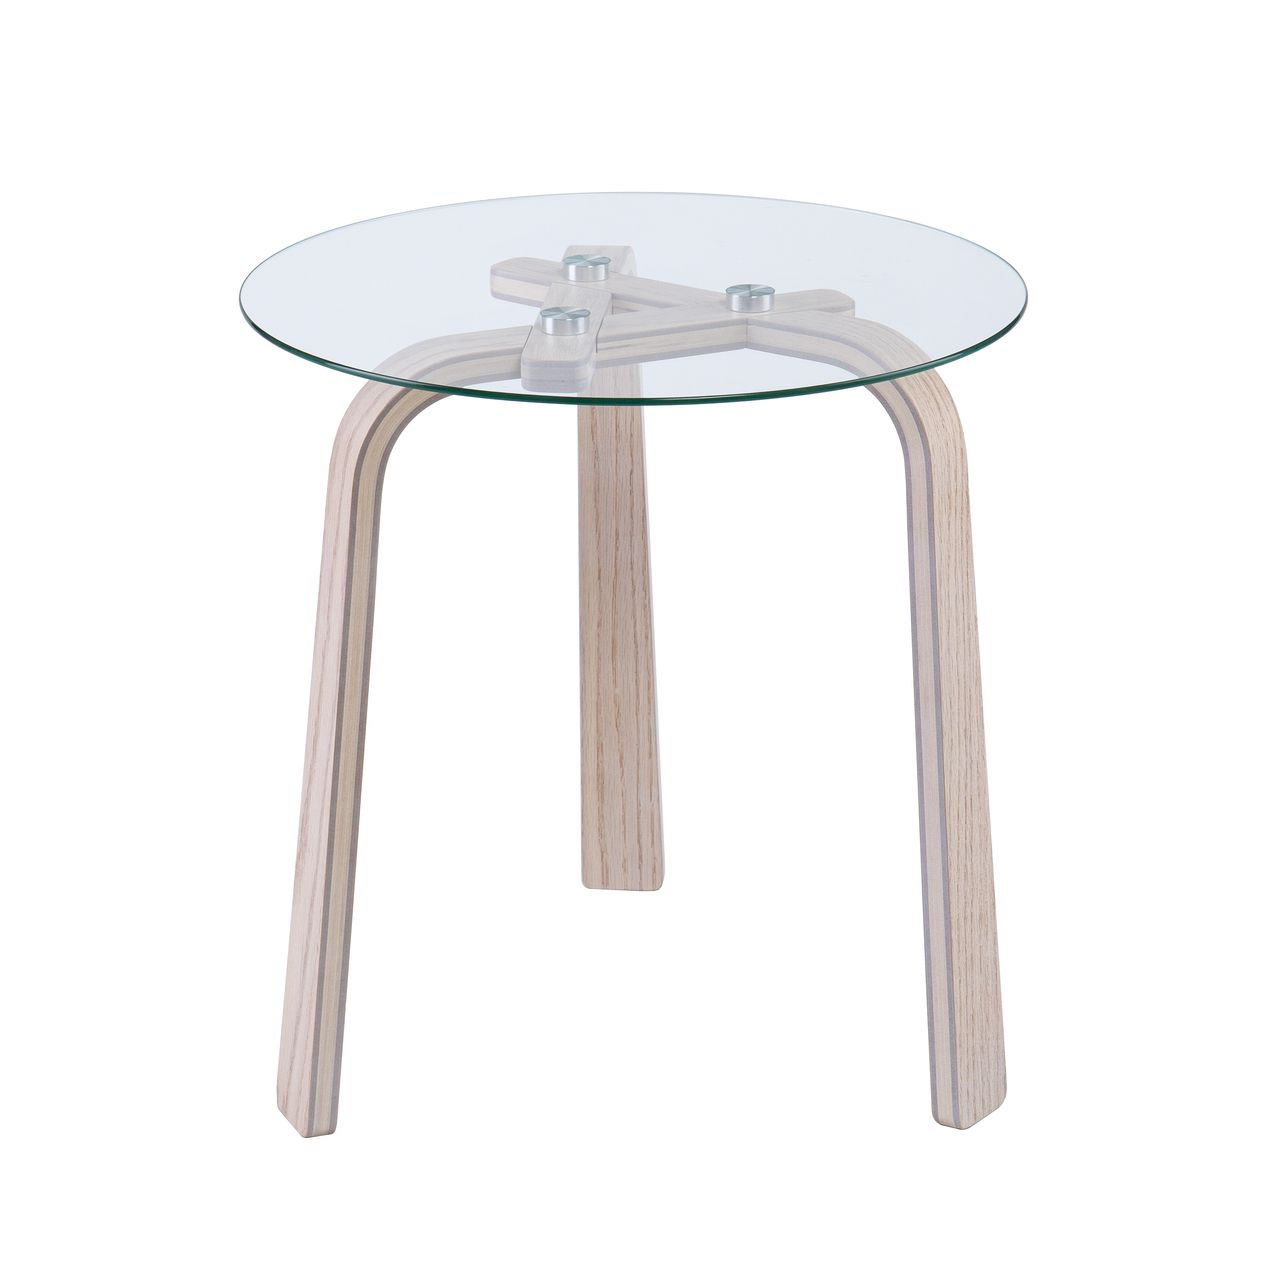 Holly & Martin Anwick Round Glass Top End Table in White